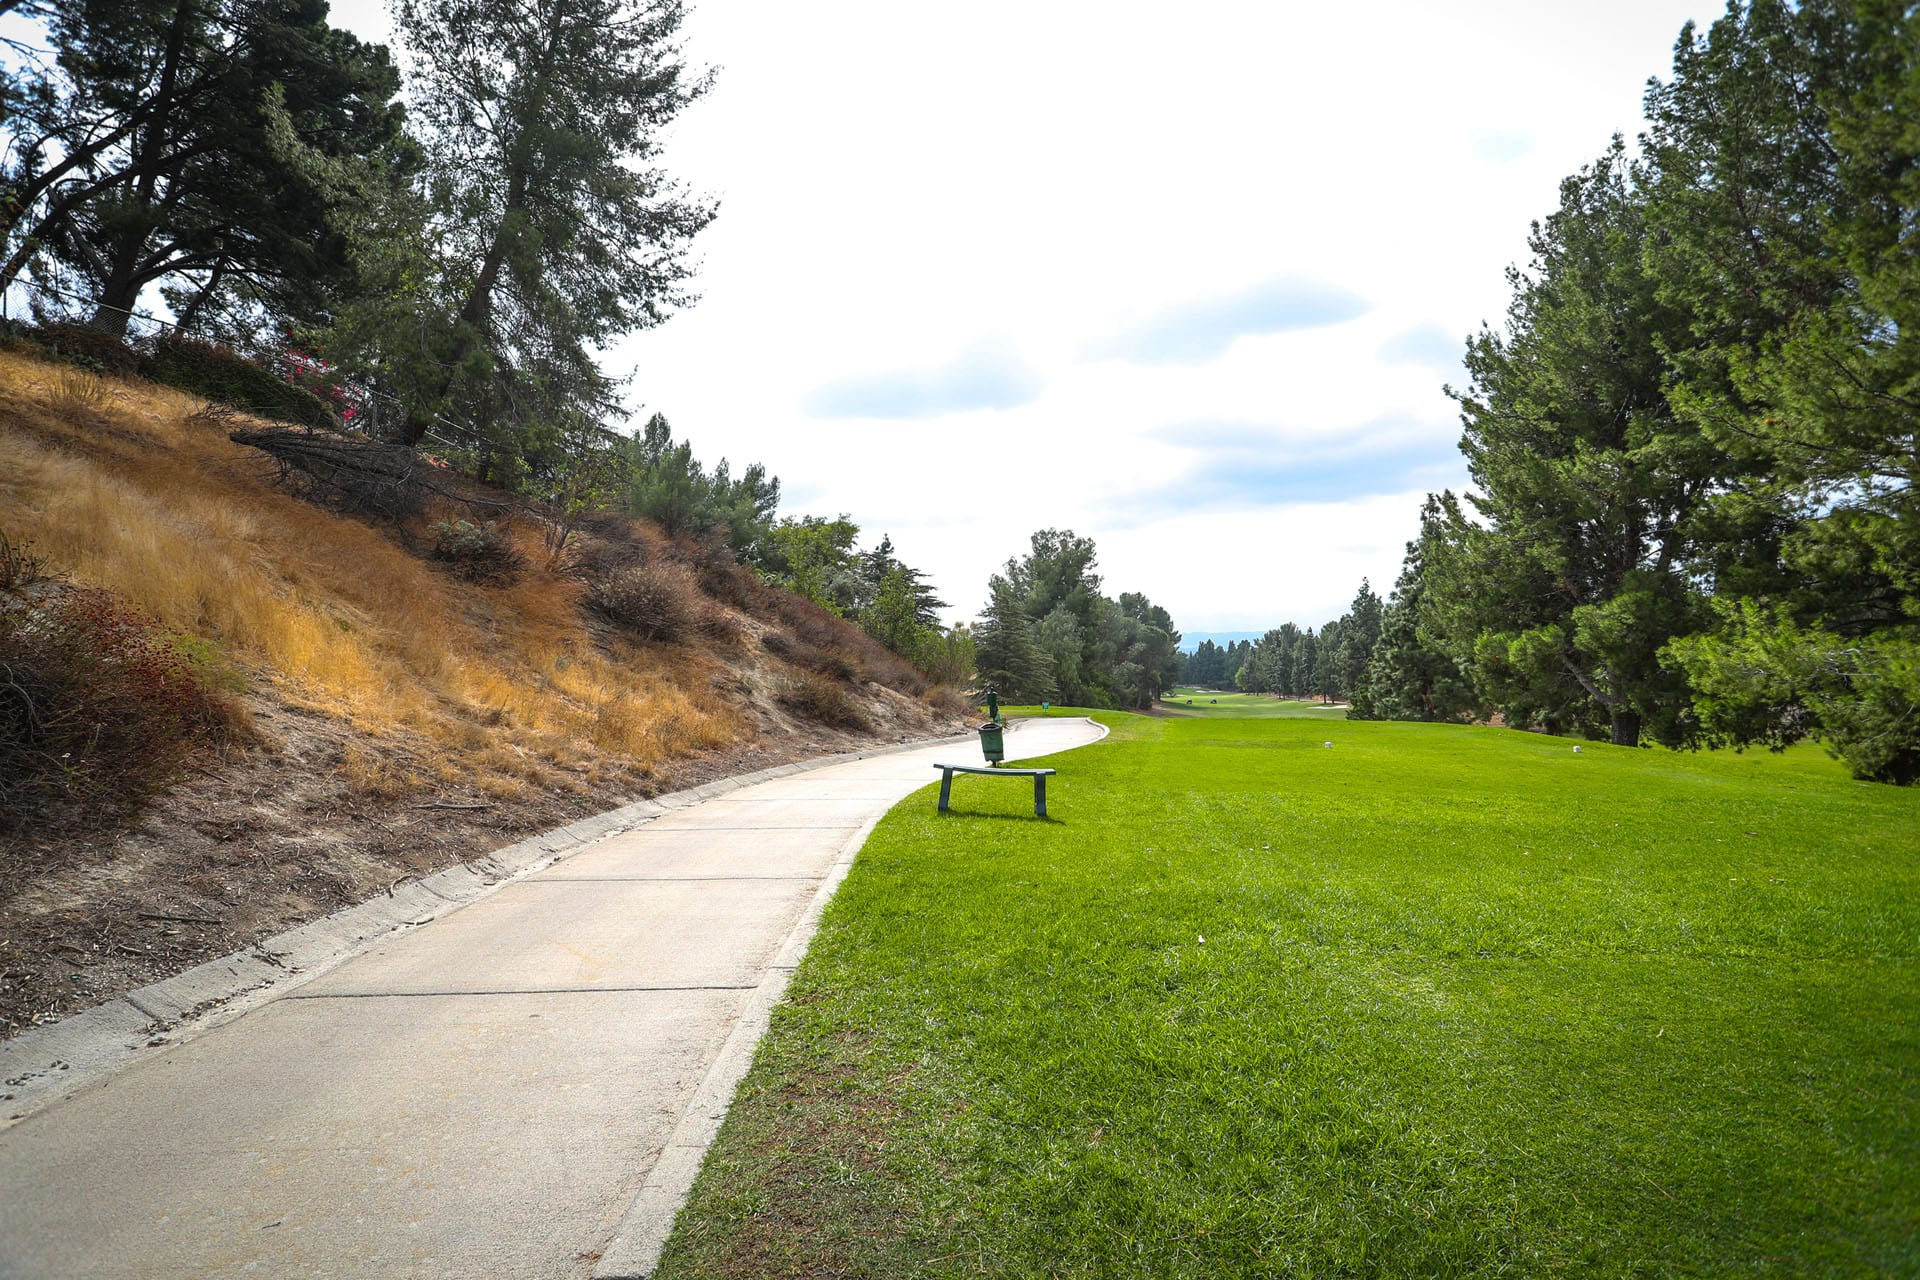 Golf cart path to the left of grass